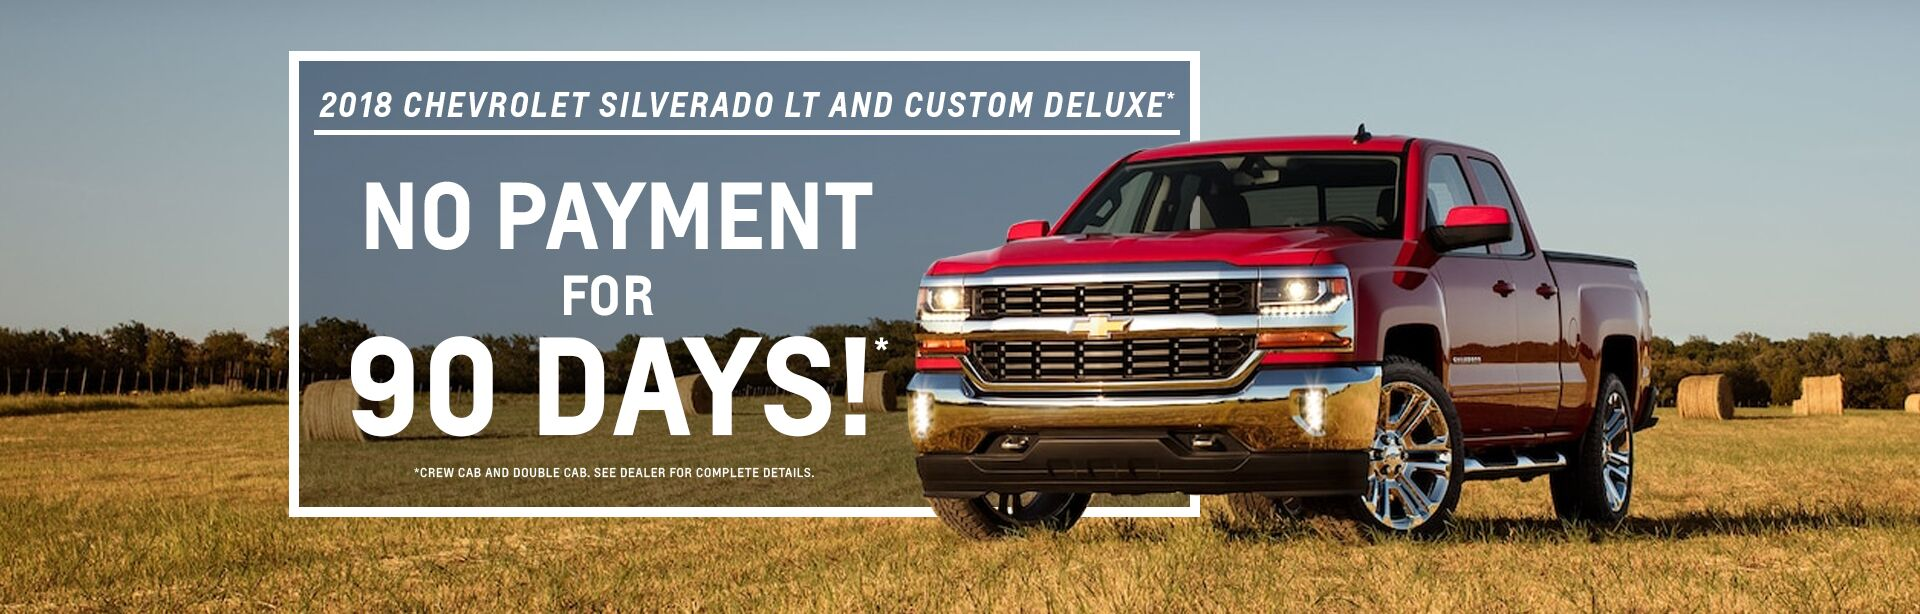 No Payment 90 Days 2018 Chevy Silverado